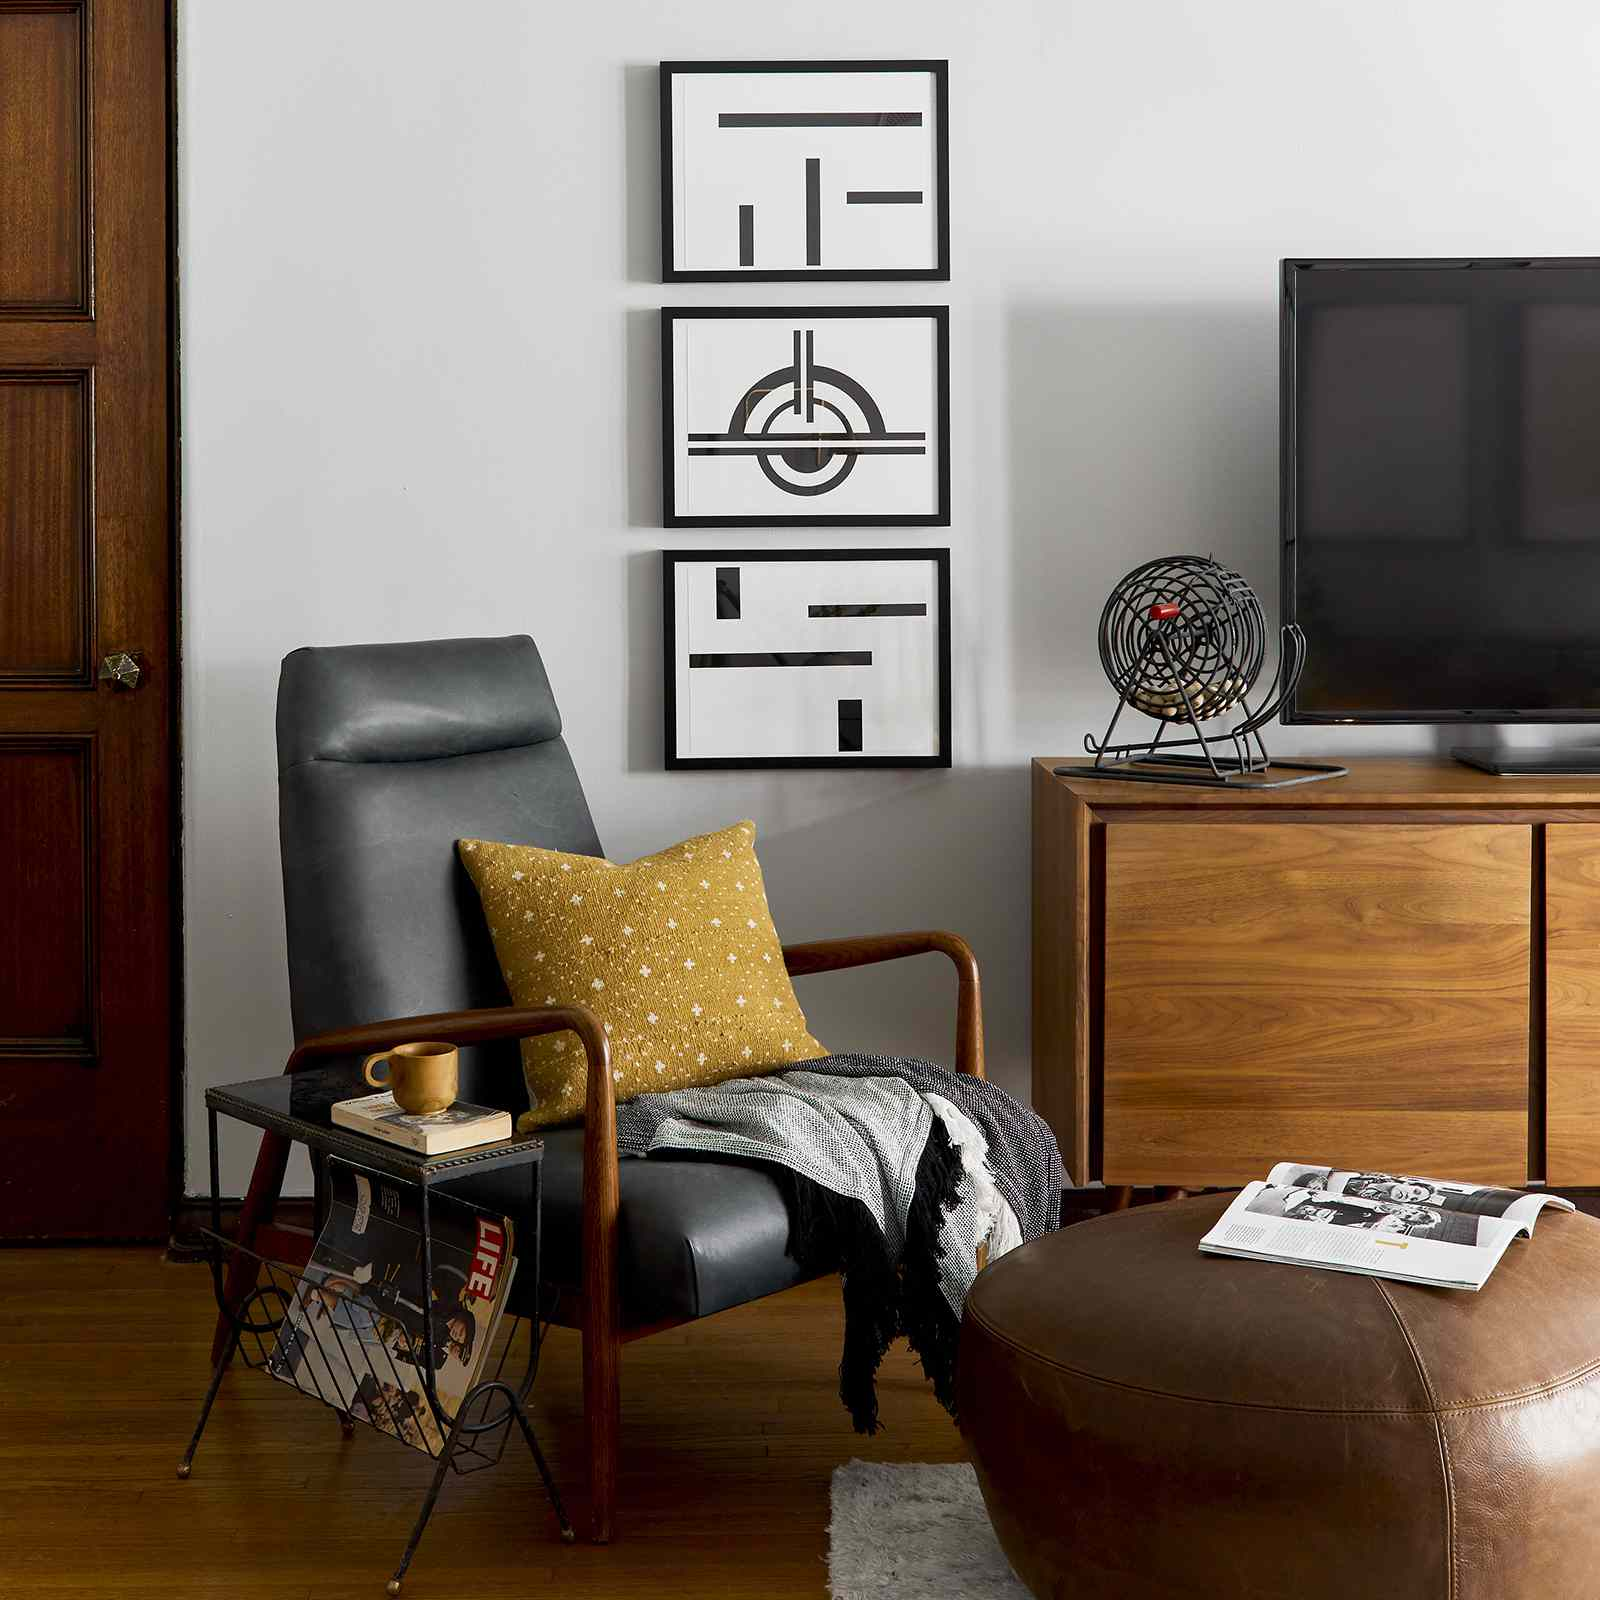 best living room ideas - reading nook with ottoman, comfy chair and magazine rack